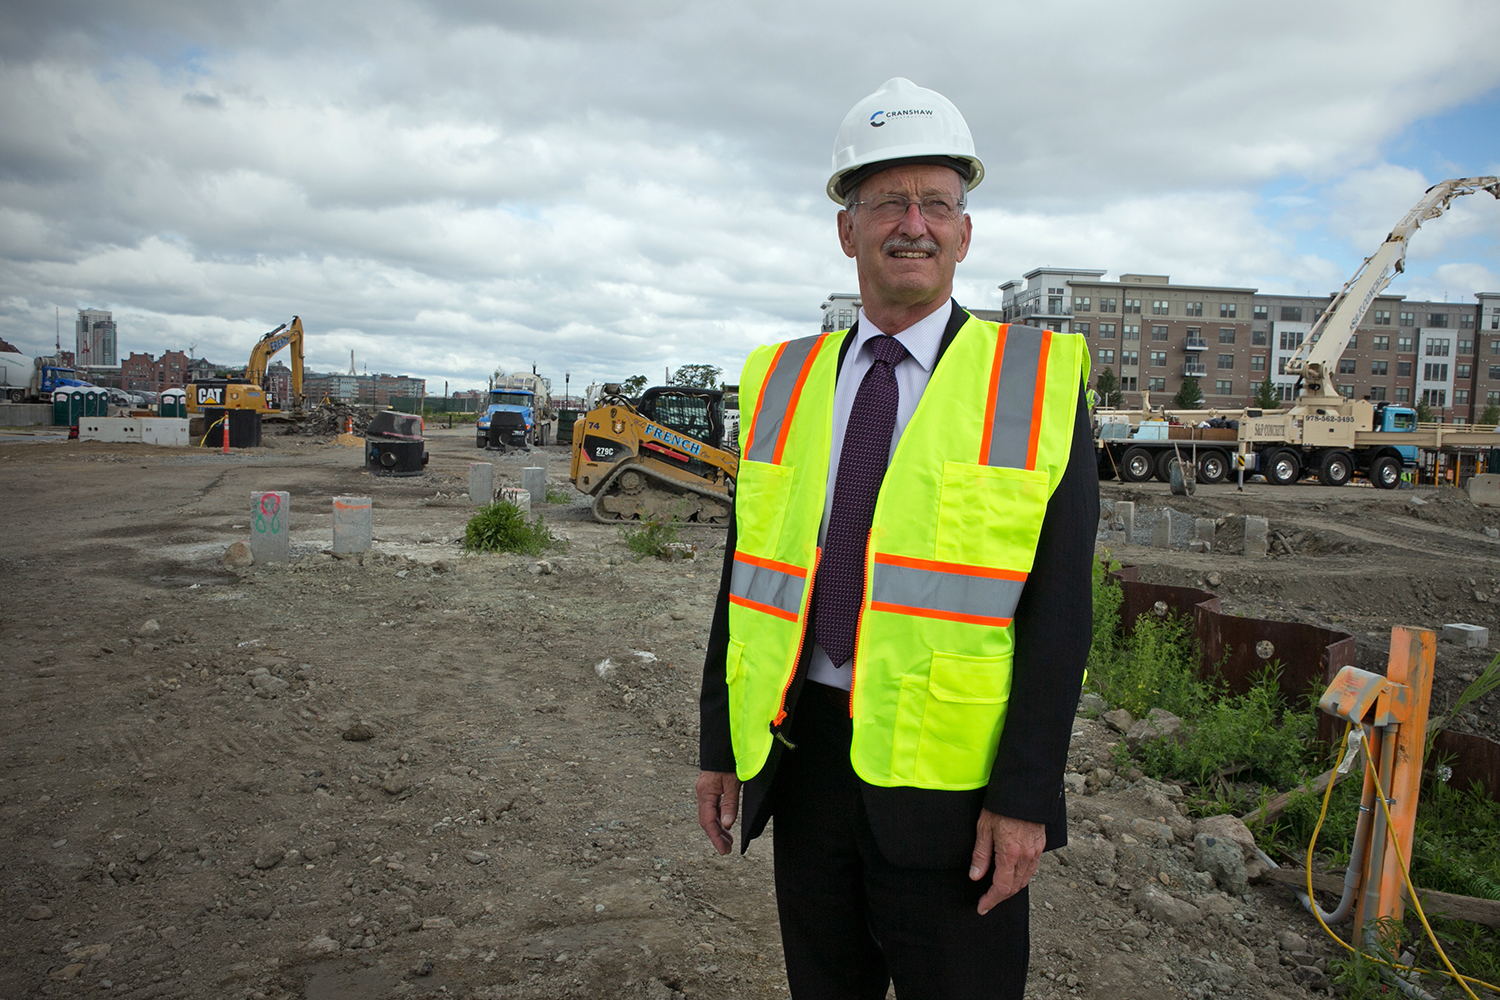 Jamie Fay, head of Fort Point Associates, stands at the construction site of Portside at East Pier, a new development in East Boston,  June 9, 2016. (Photo by Lauren Owens Lambert/GroundTruth)